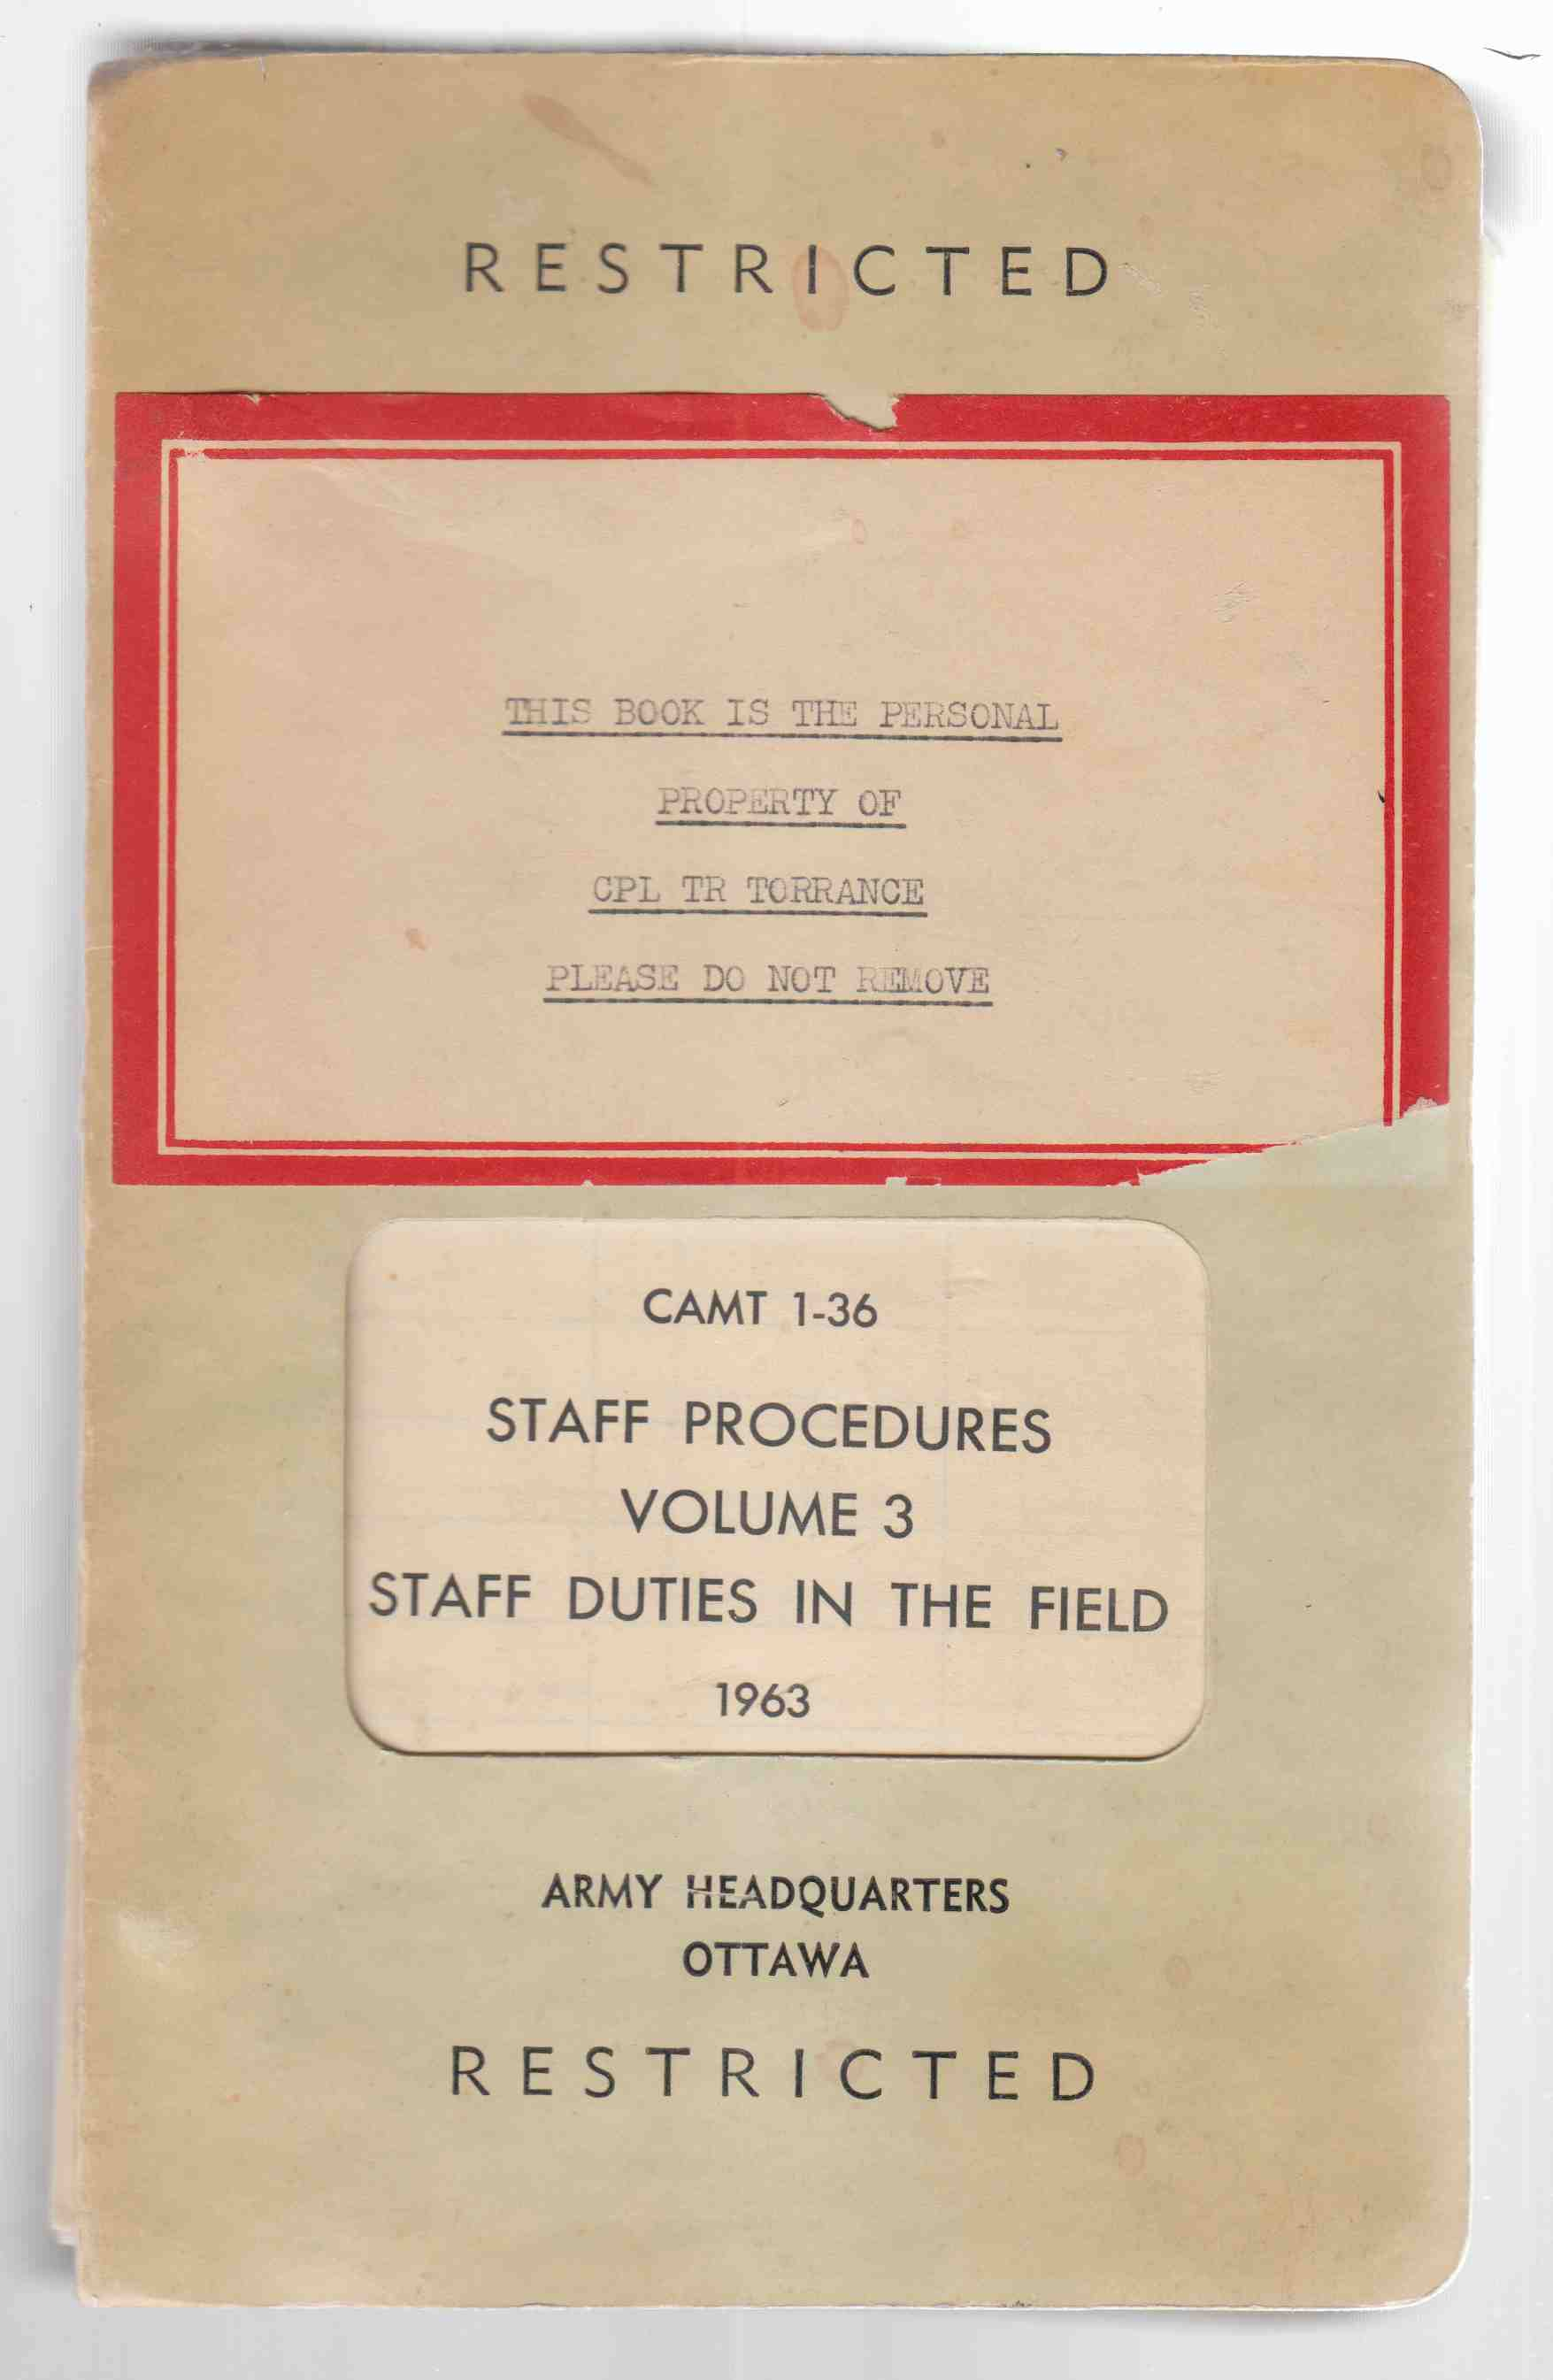 Image for Staff Procedures Volume 3 Staff Duties in the Field 1963 CAMT 1-36